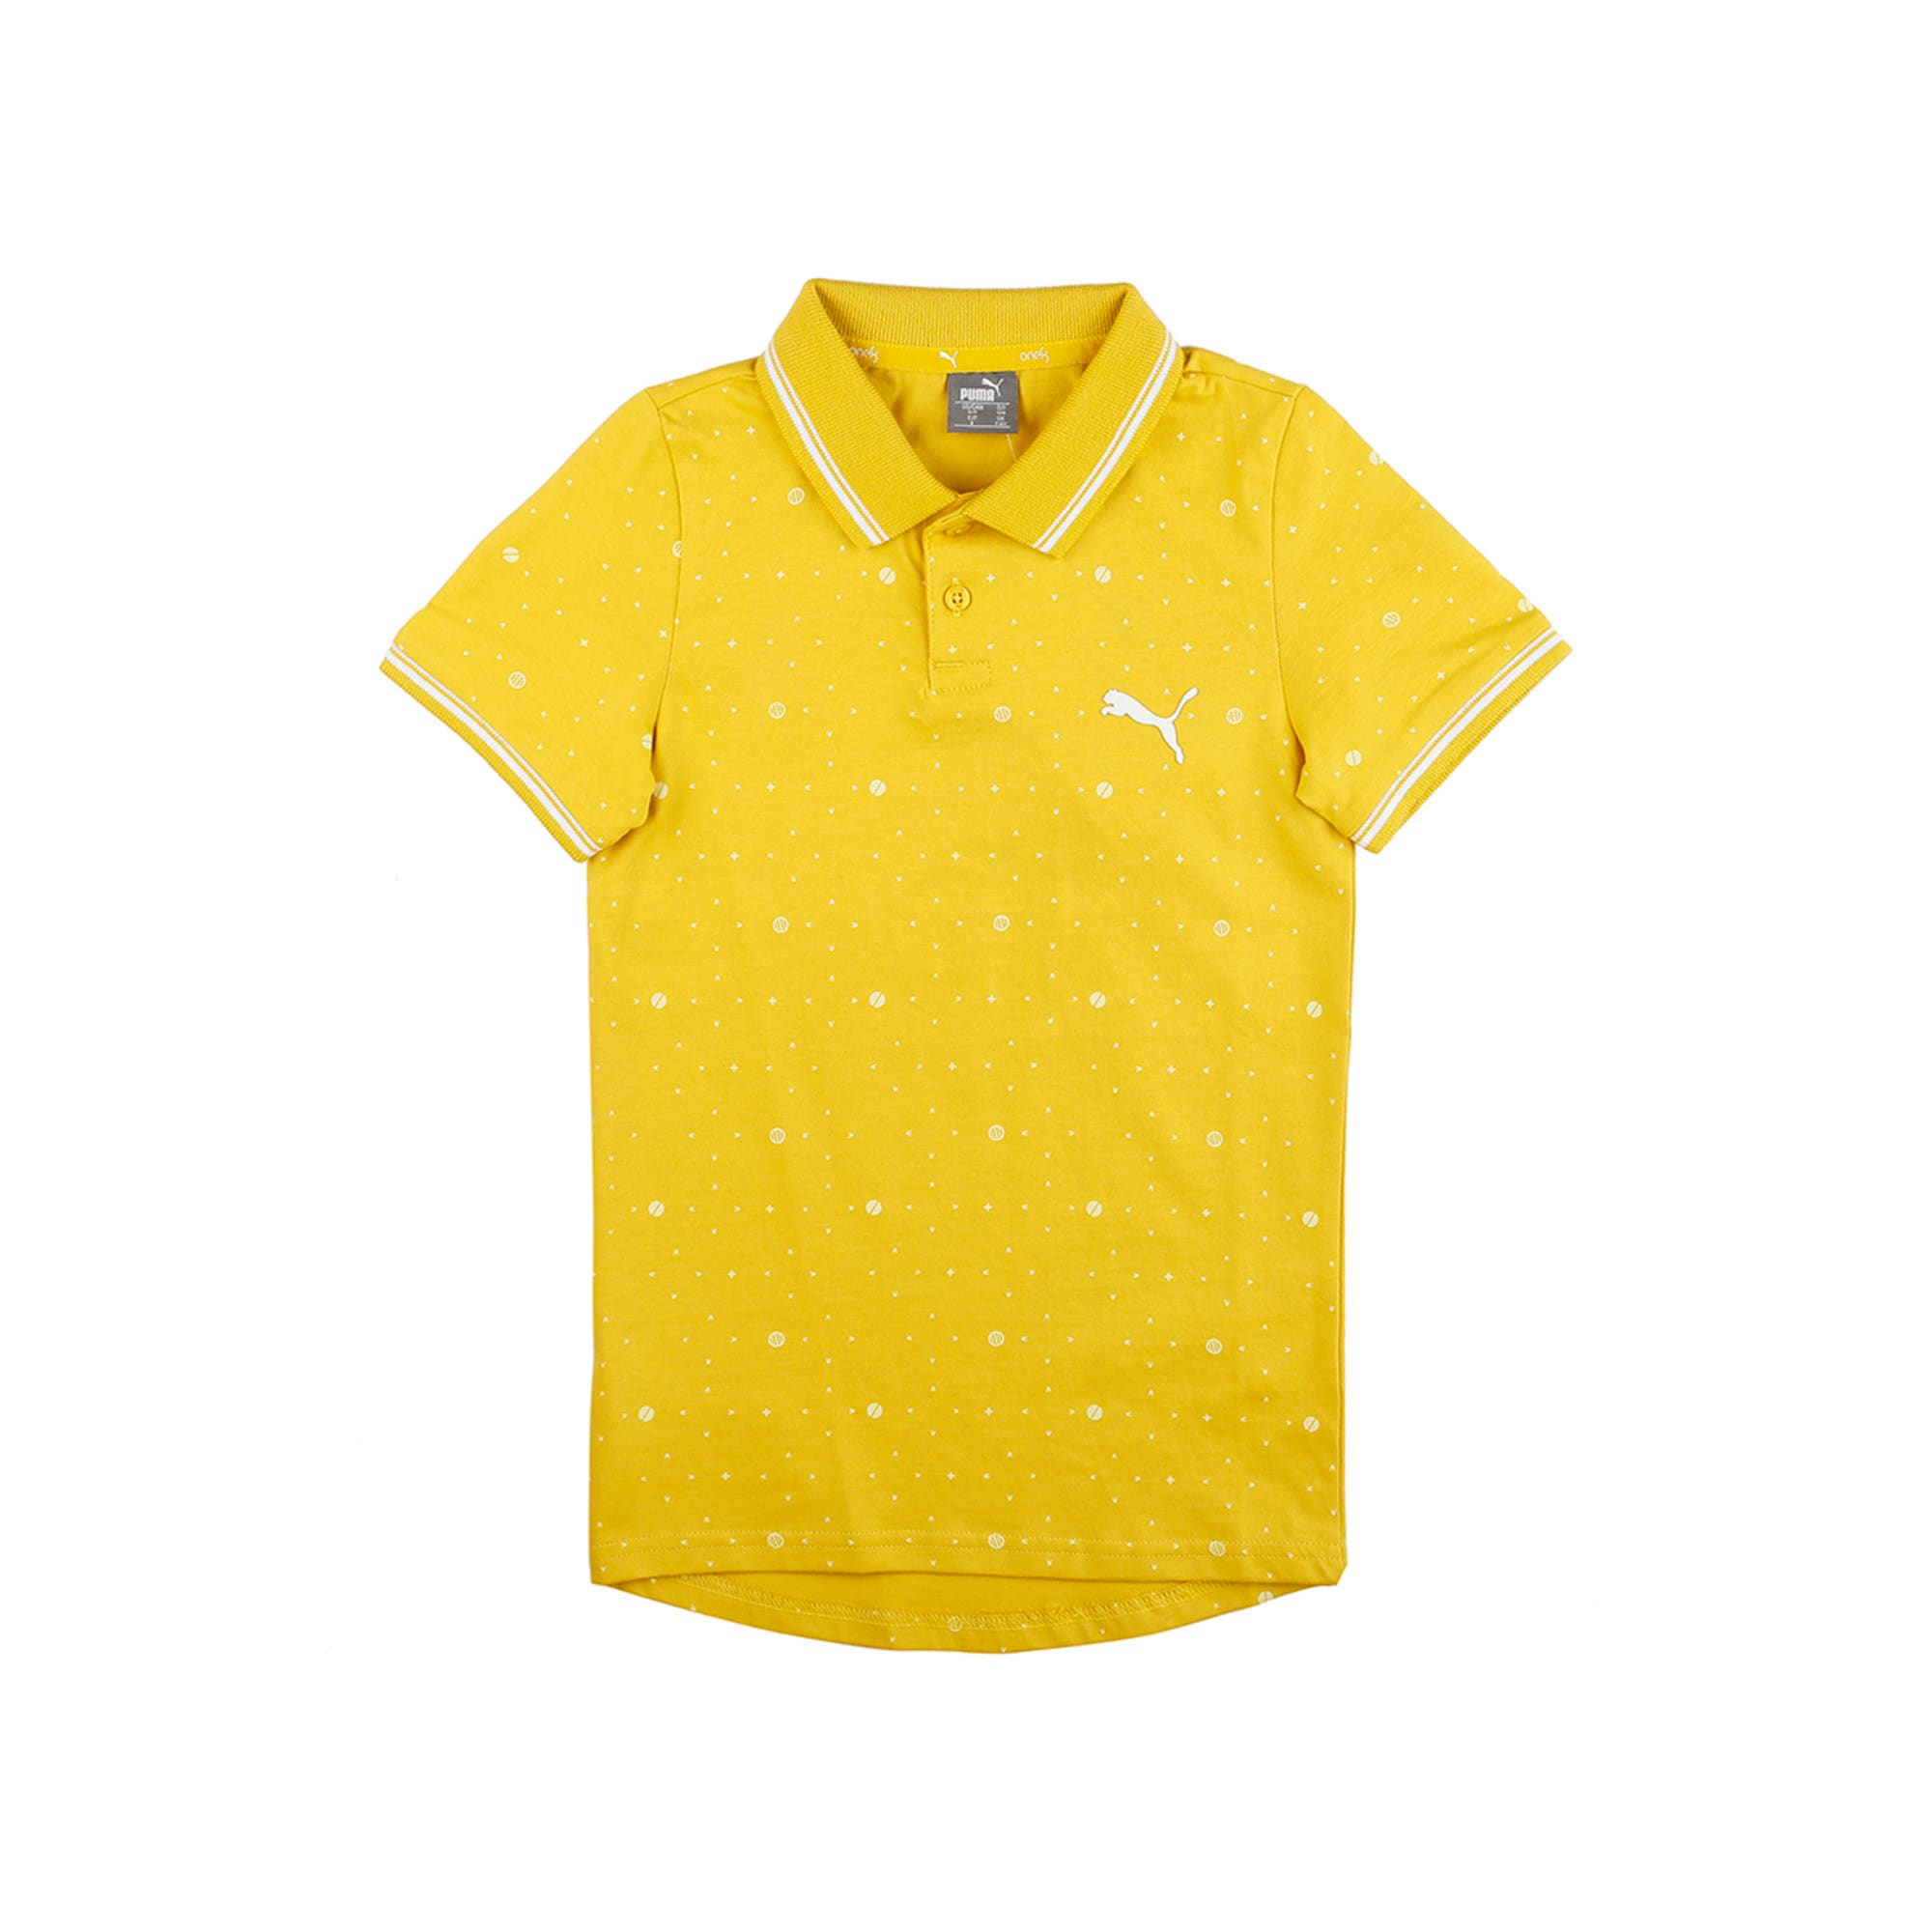 Thumbnail 4 of one8 VK AOP Kids' Printed Polo, Sulphur, medium-IND